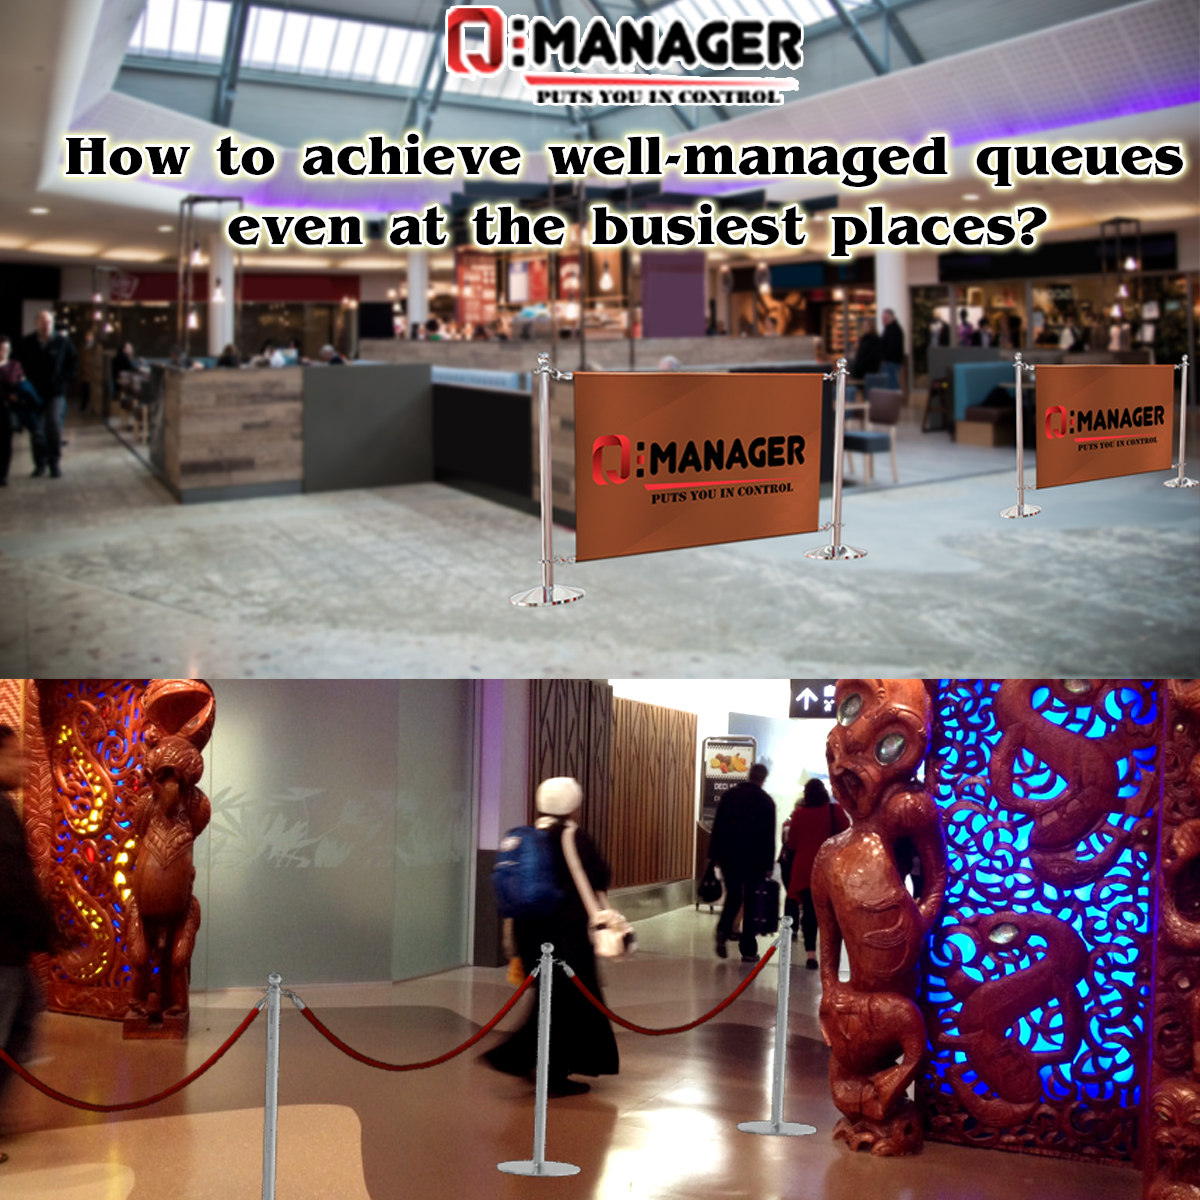 How to achieve well-managed queues even at the busiest places?